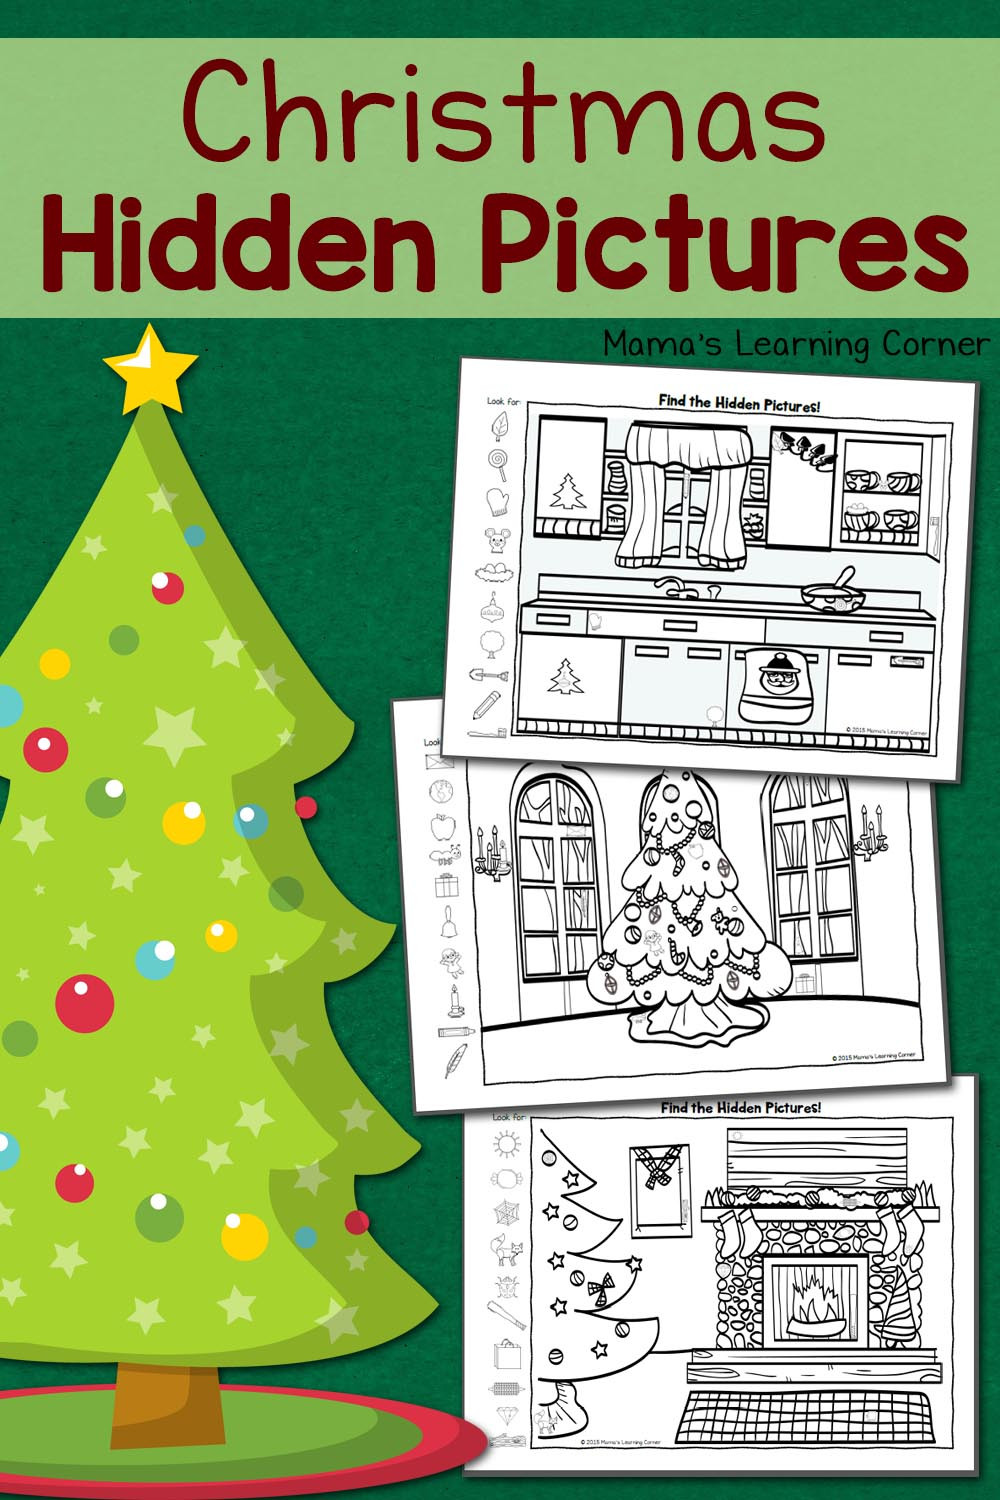 Christmas Hidden Pictures Printable Christmas Hidden Worksheets Mamas Learning Corner